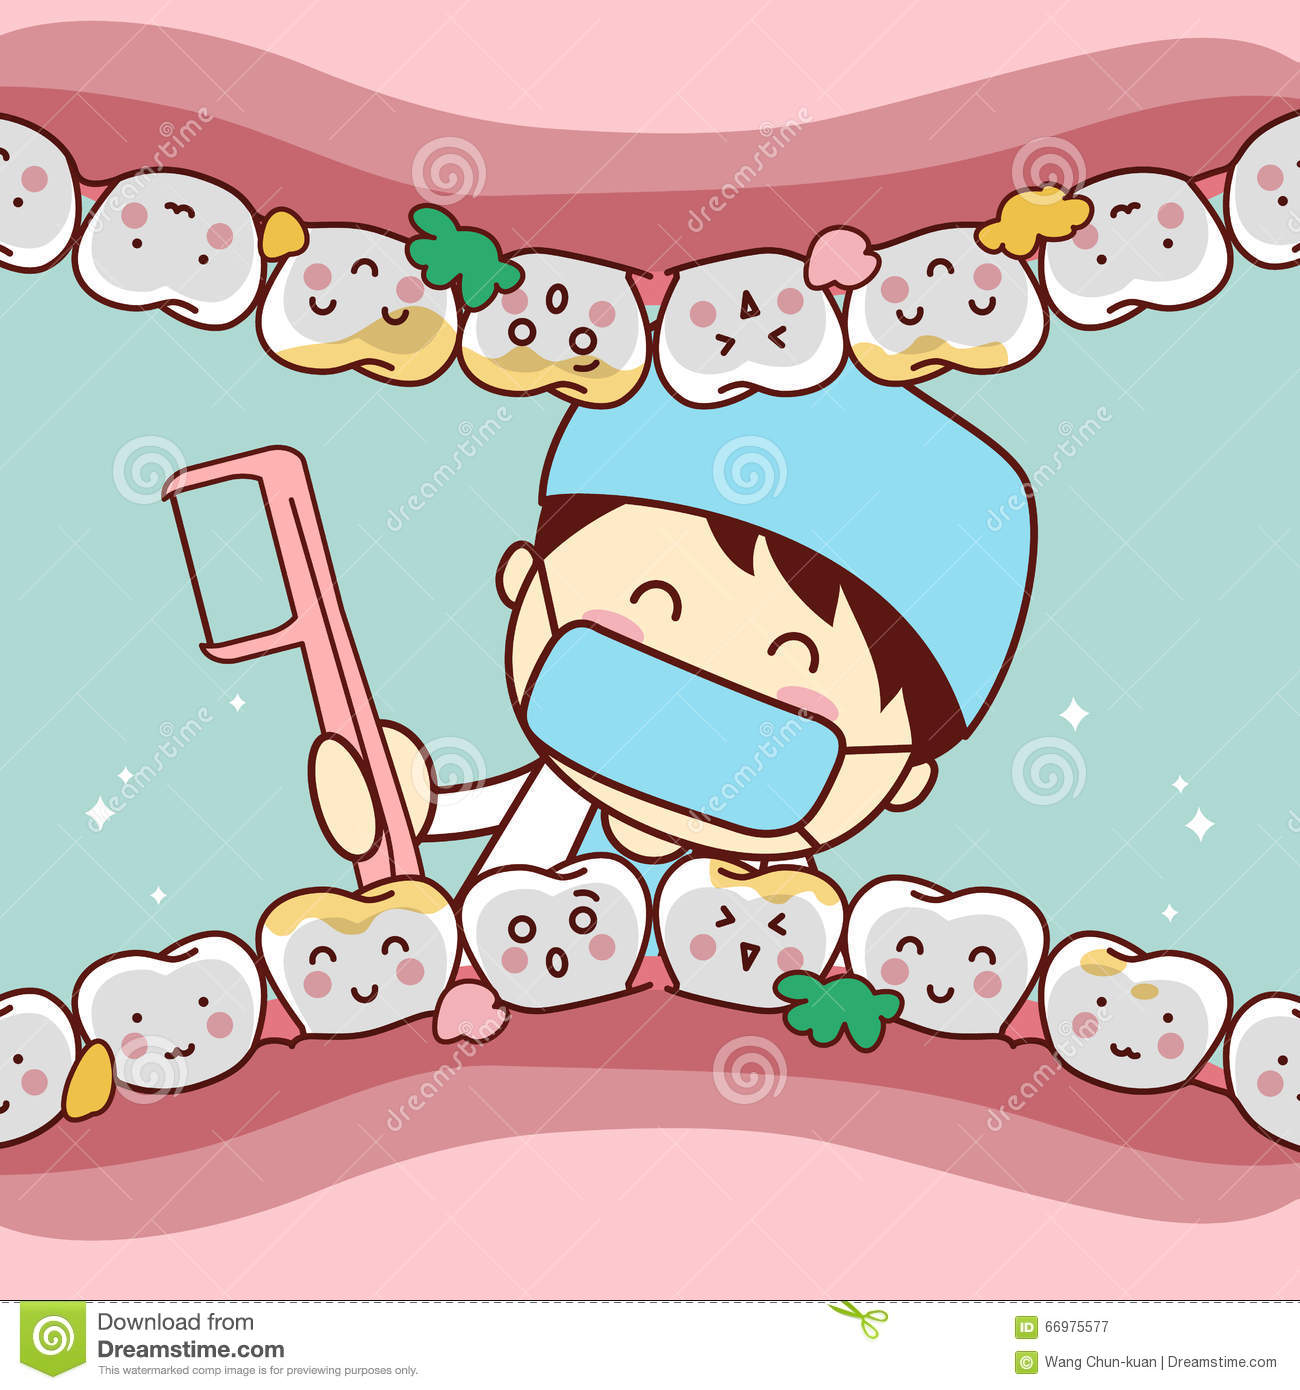 cute-cartoon-dentist-brush-tooth-doctor-clean-floss-great-health-dental-care-concept-66975577.jpg